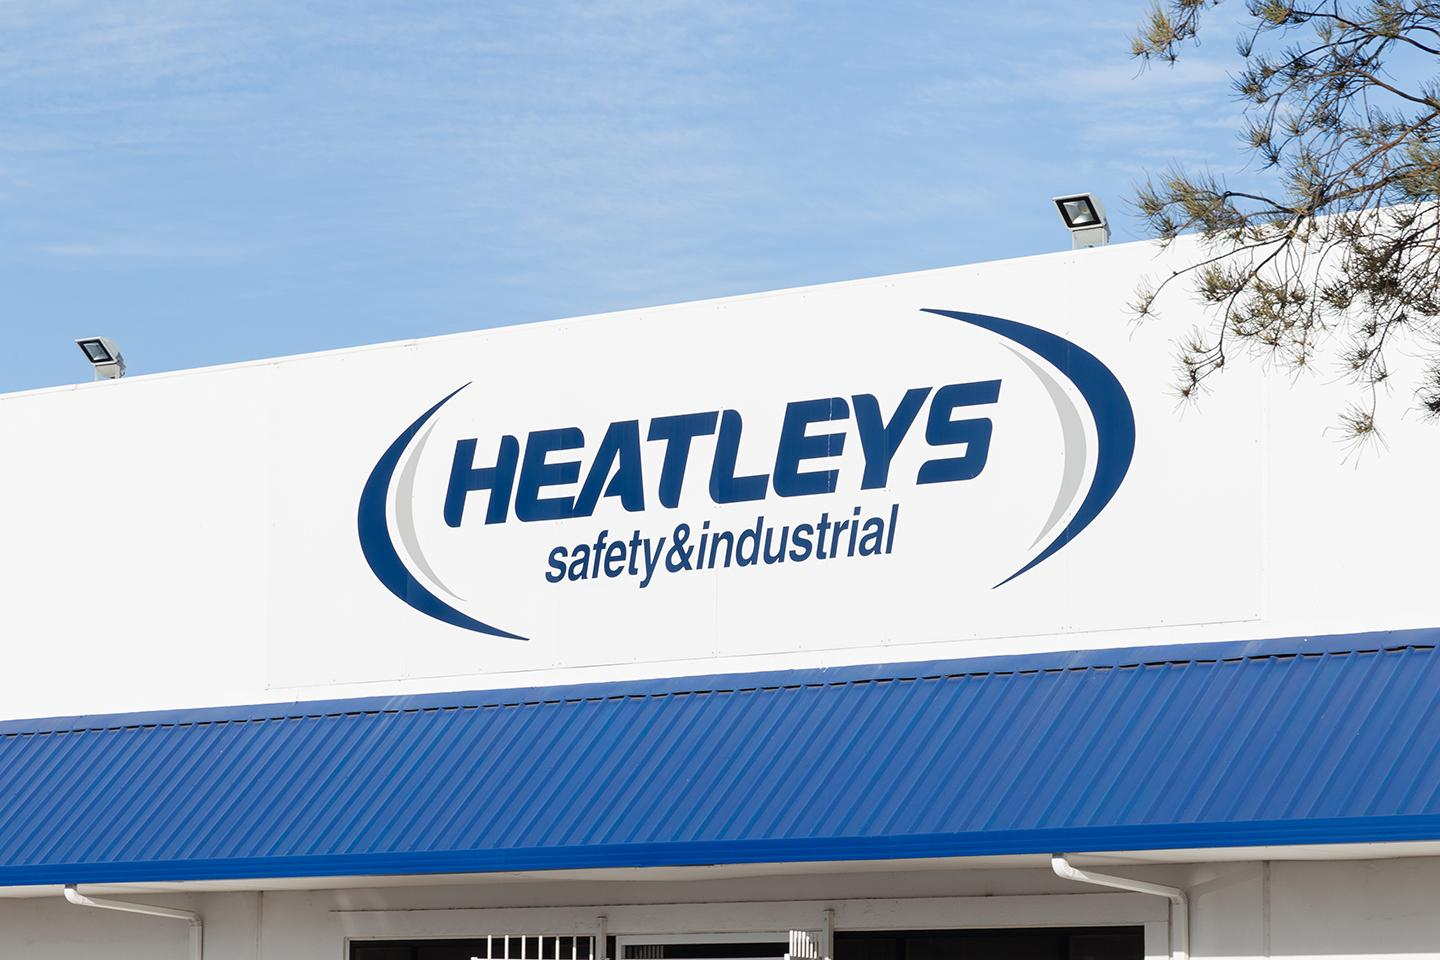 Stealth to list after Heatleys acquisition